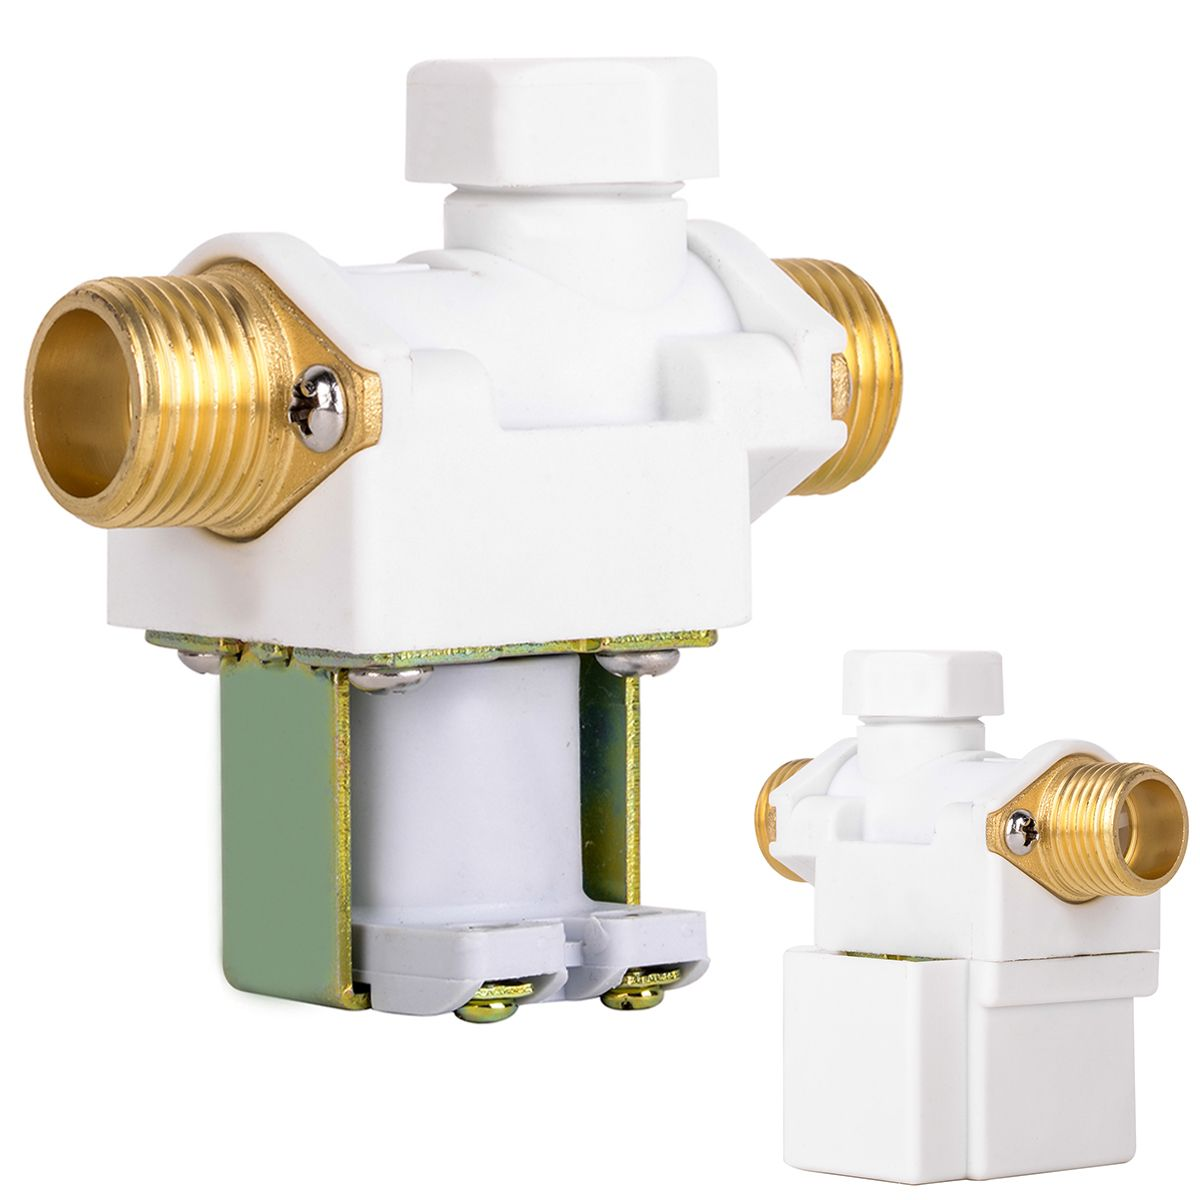 1pc Wear Resistant 1 2 Electric Solenoid Valve Ac 220v Water Air N C Normally Closed Operation Mayitr Durable Diaphragm Val Valve Electricity Sprinkler System